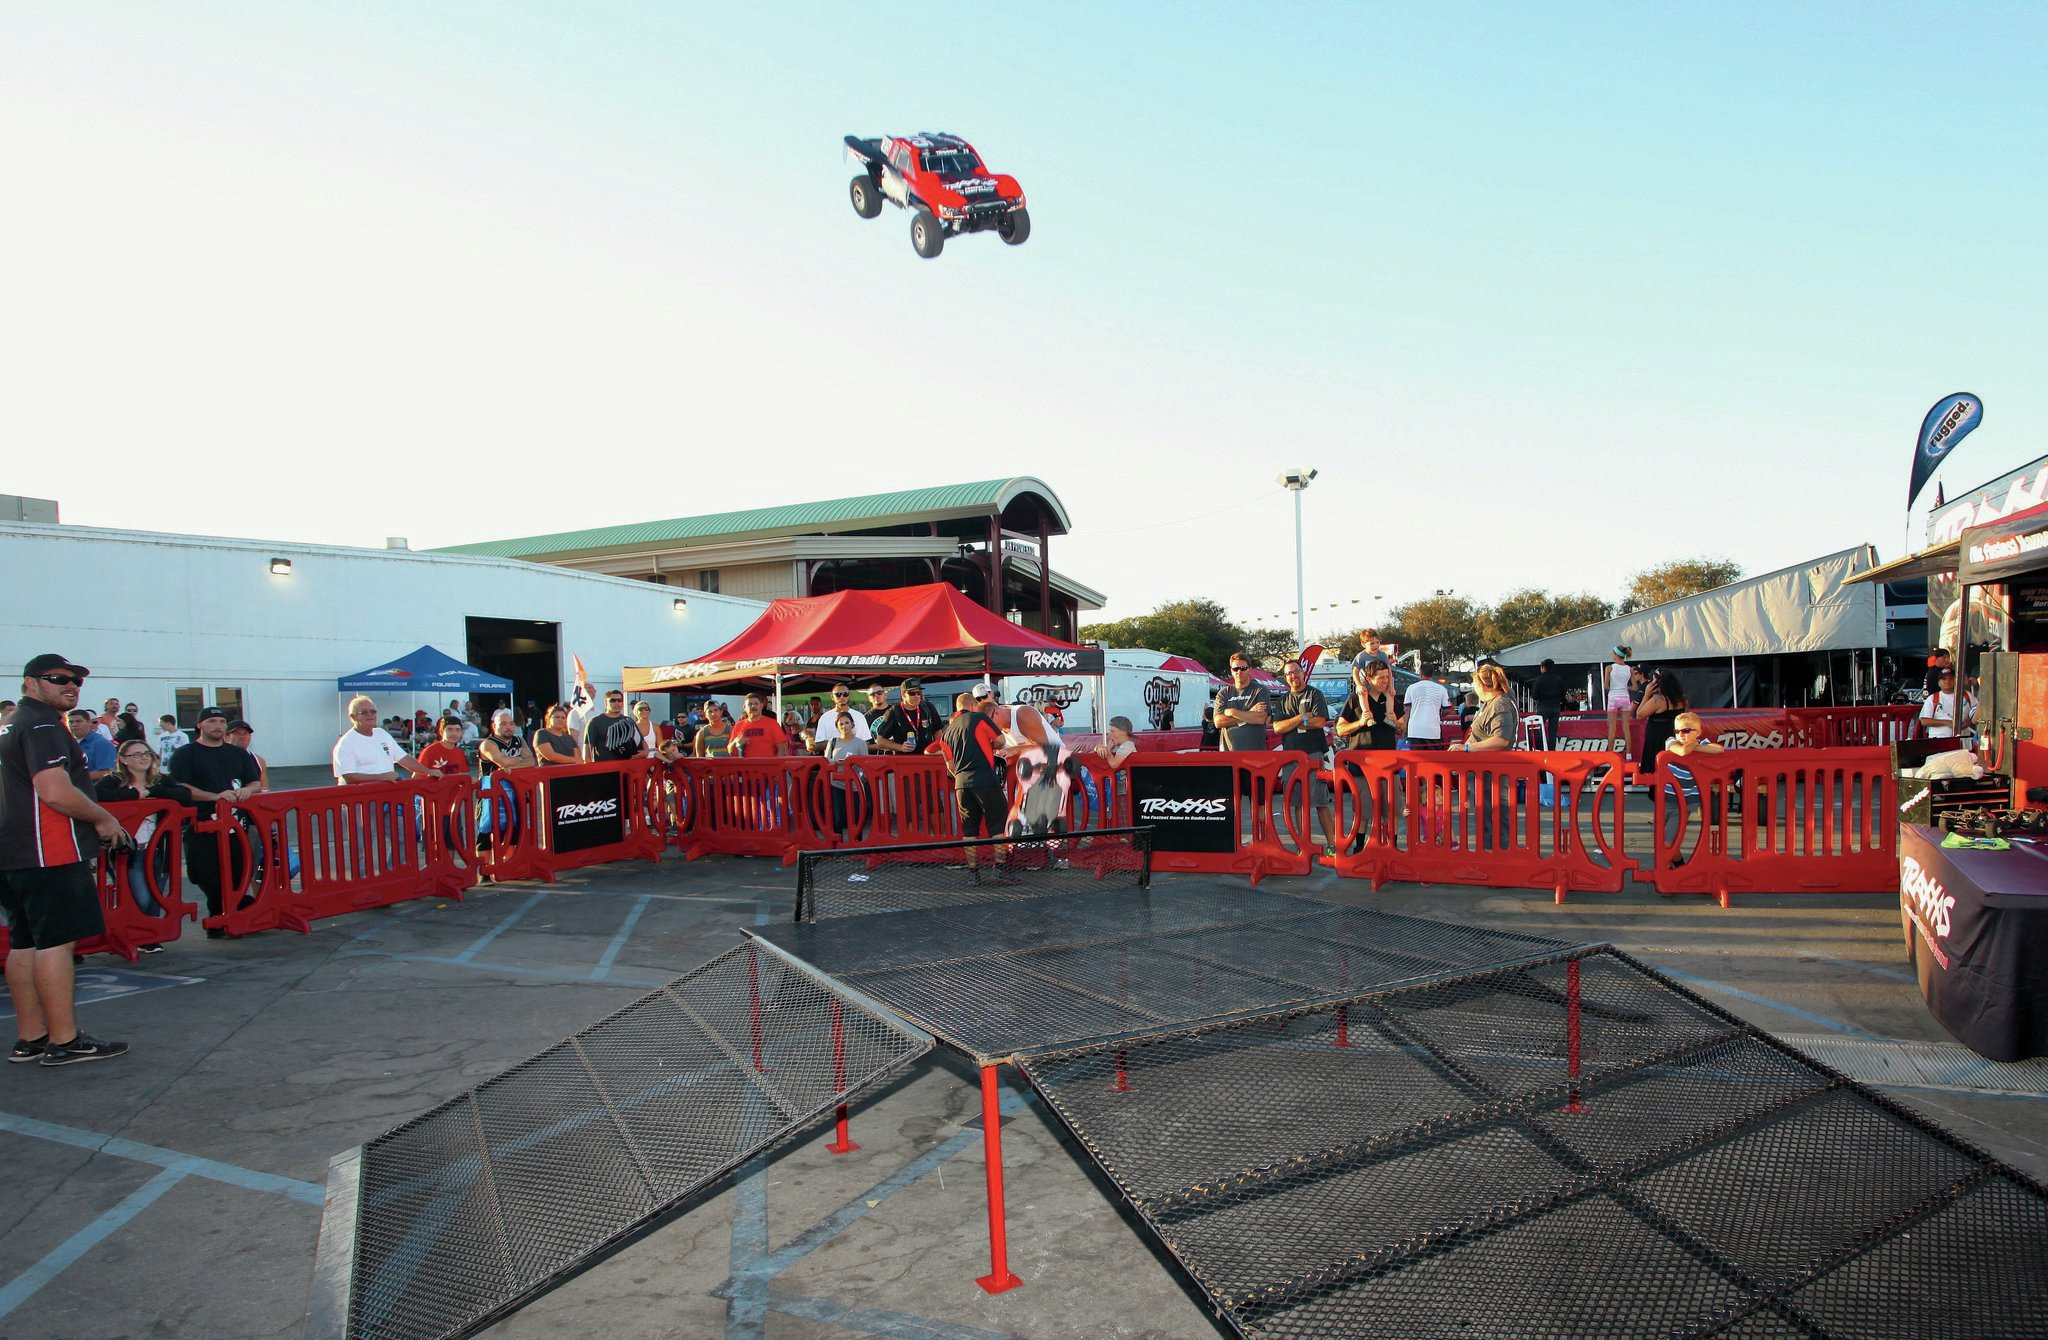 By flying them off of this ramp, it seemed like the Traxxas crew were deliberately trying to break their cool radio-controlled cars. Despite huge crashes, none did.